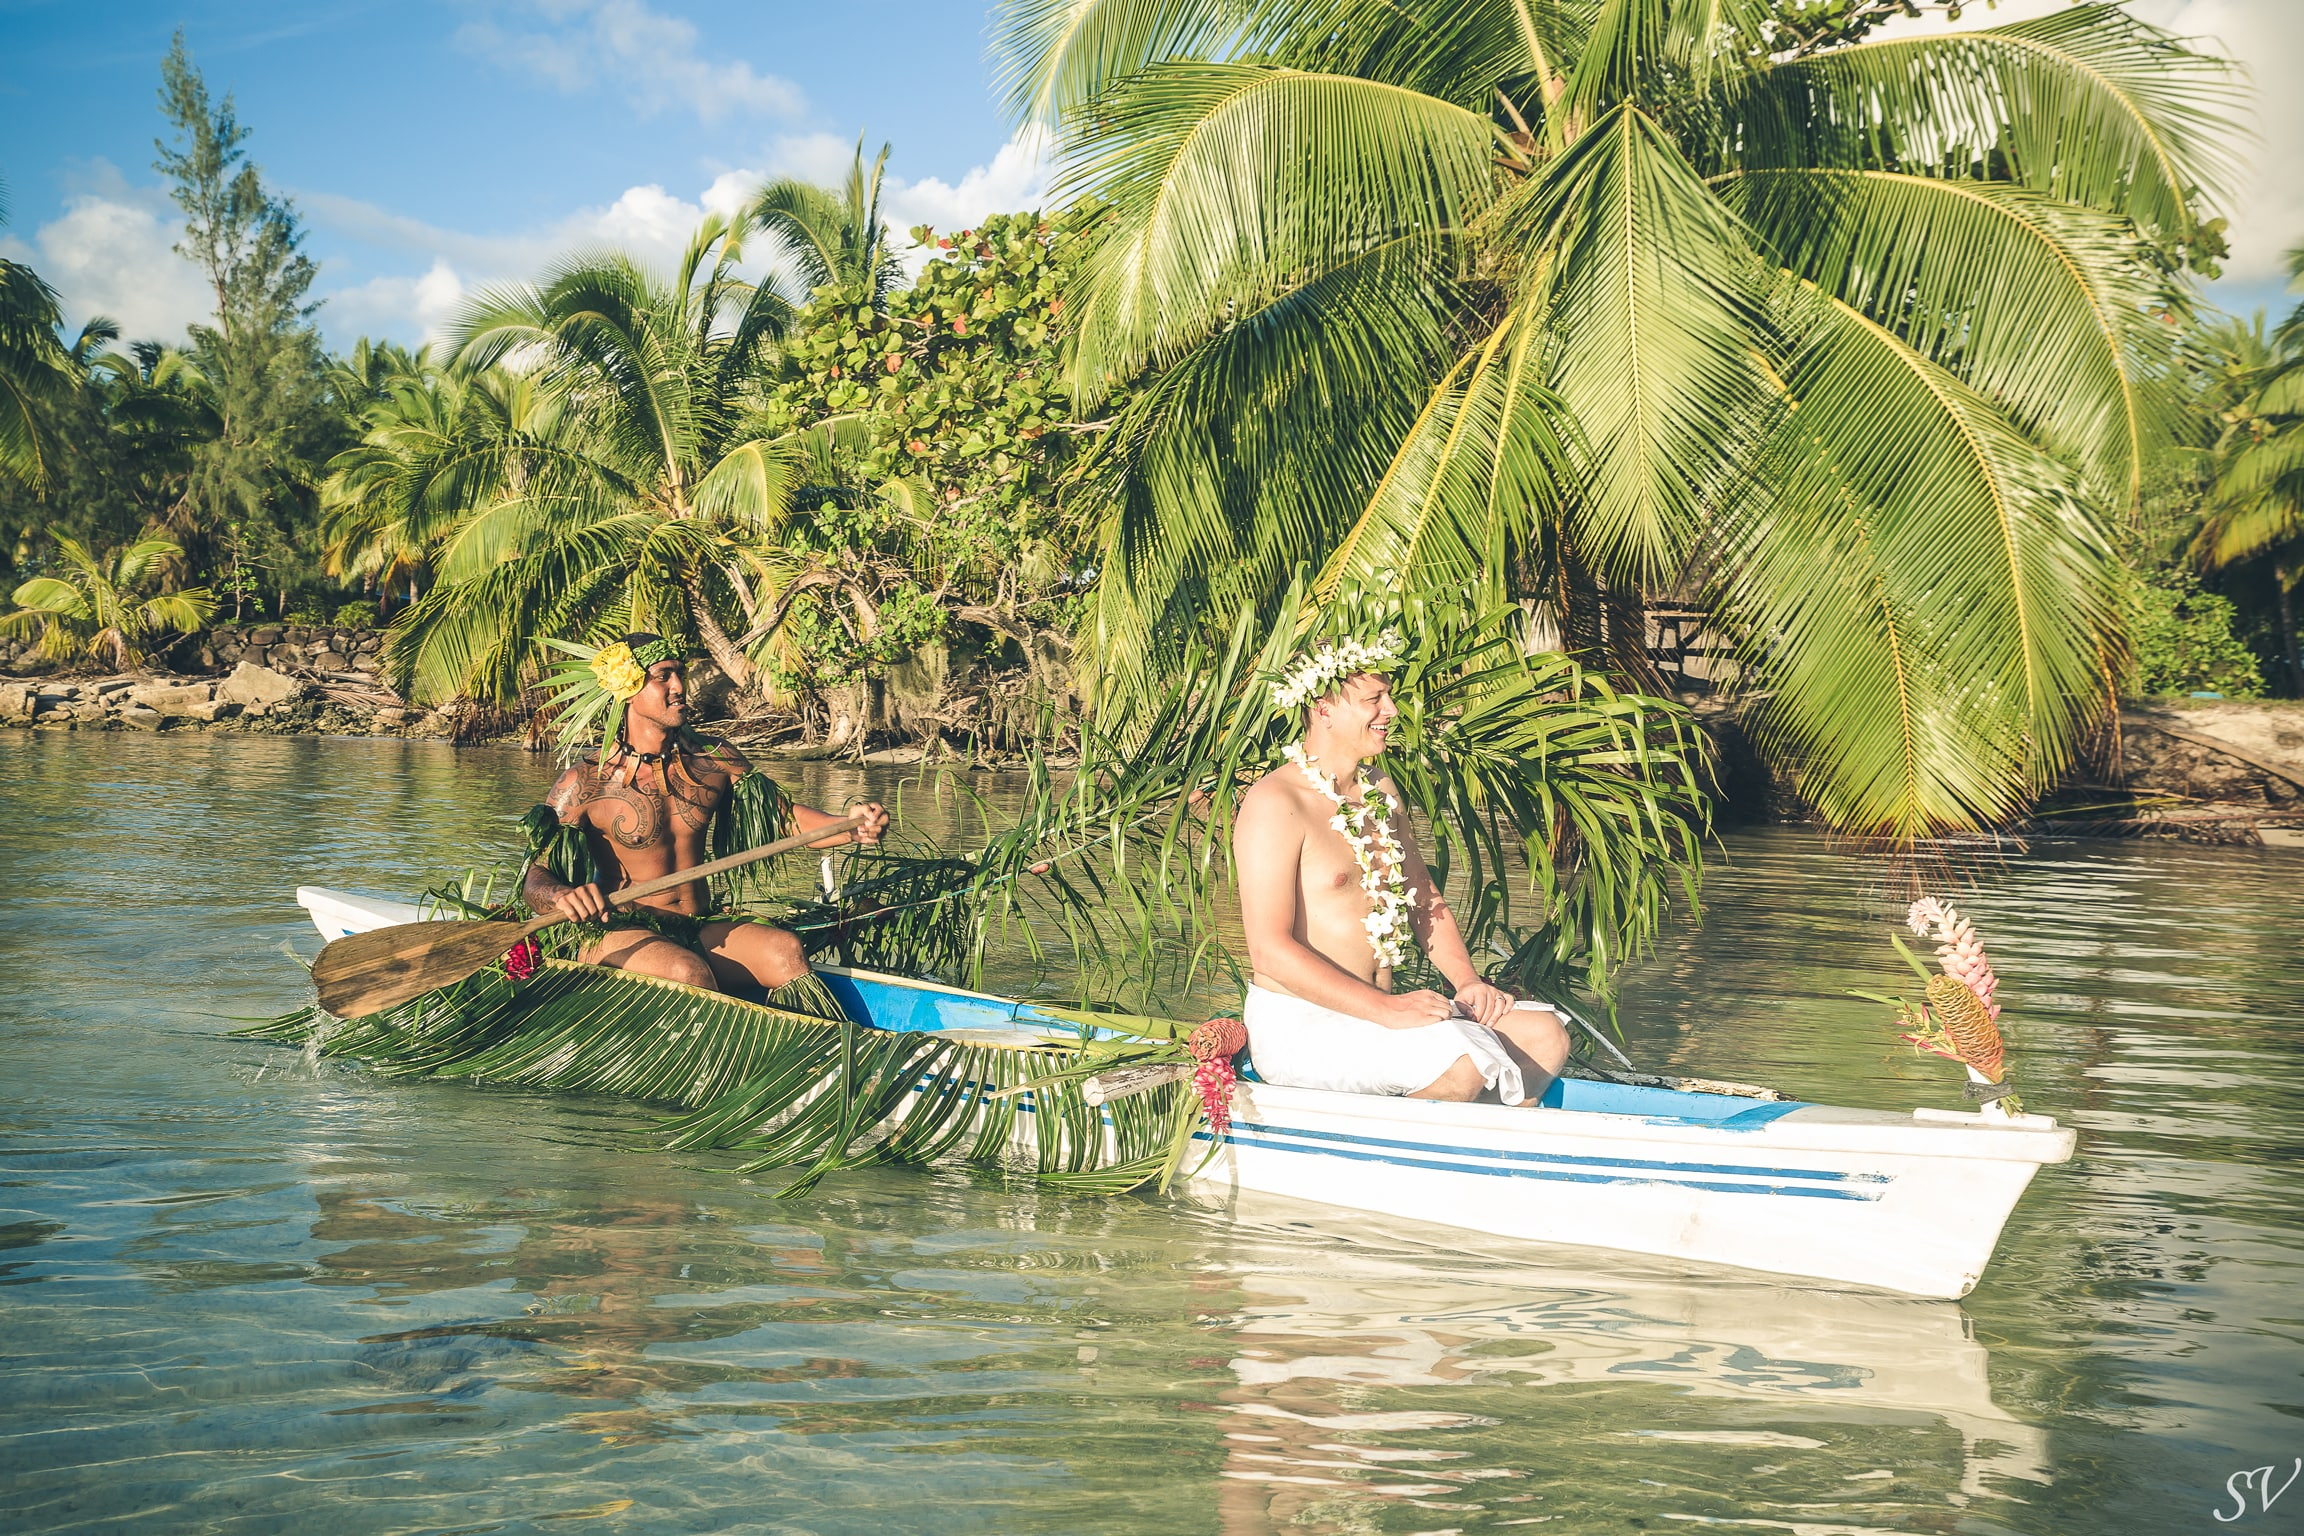 The arrival of the groom into the traditional polynesian canoe